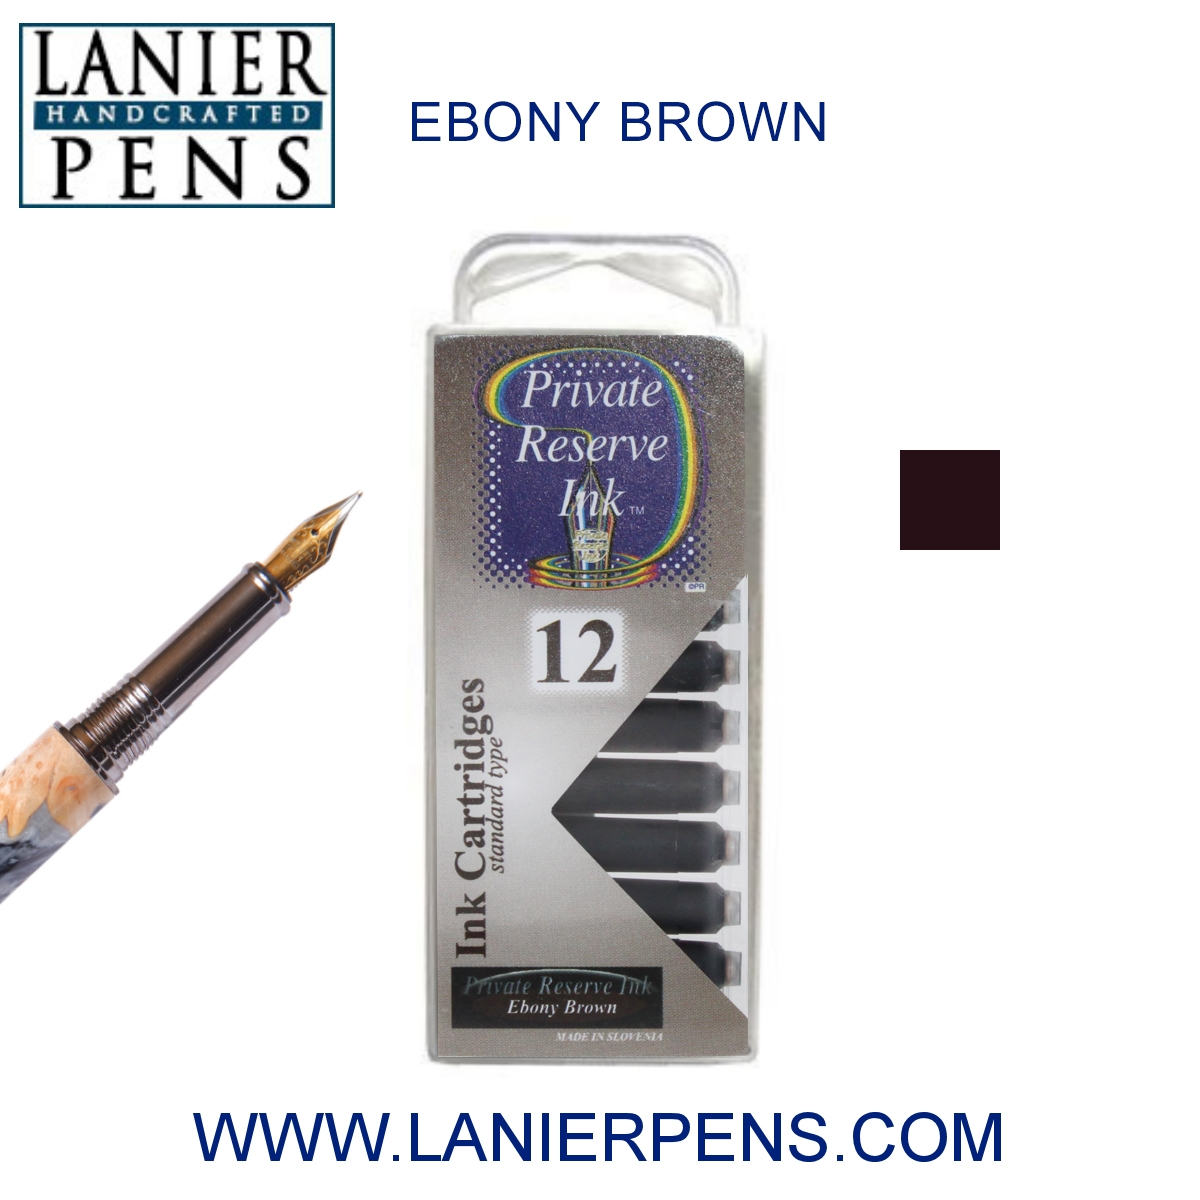 12 Pack - Private Reserve Ink, Universal Fountain Pen Ink Cartridges Clear Case, Ebony Brown